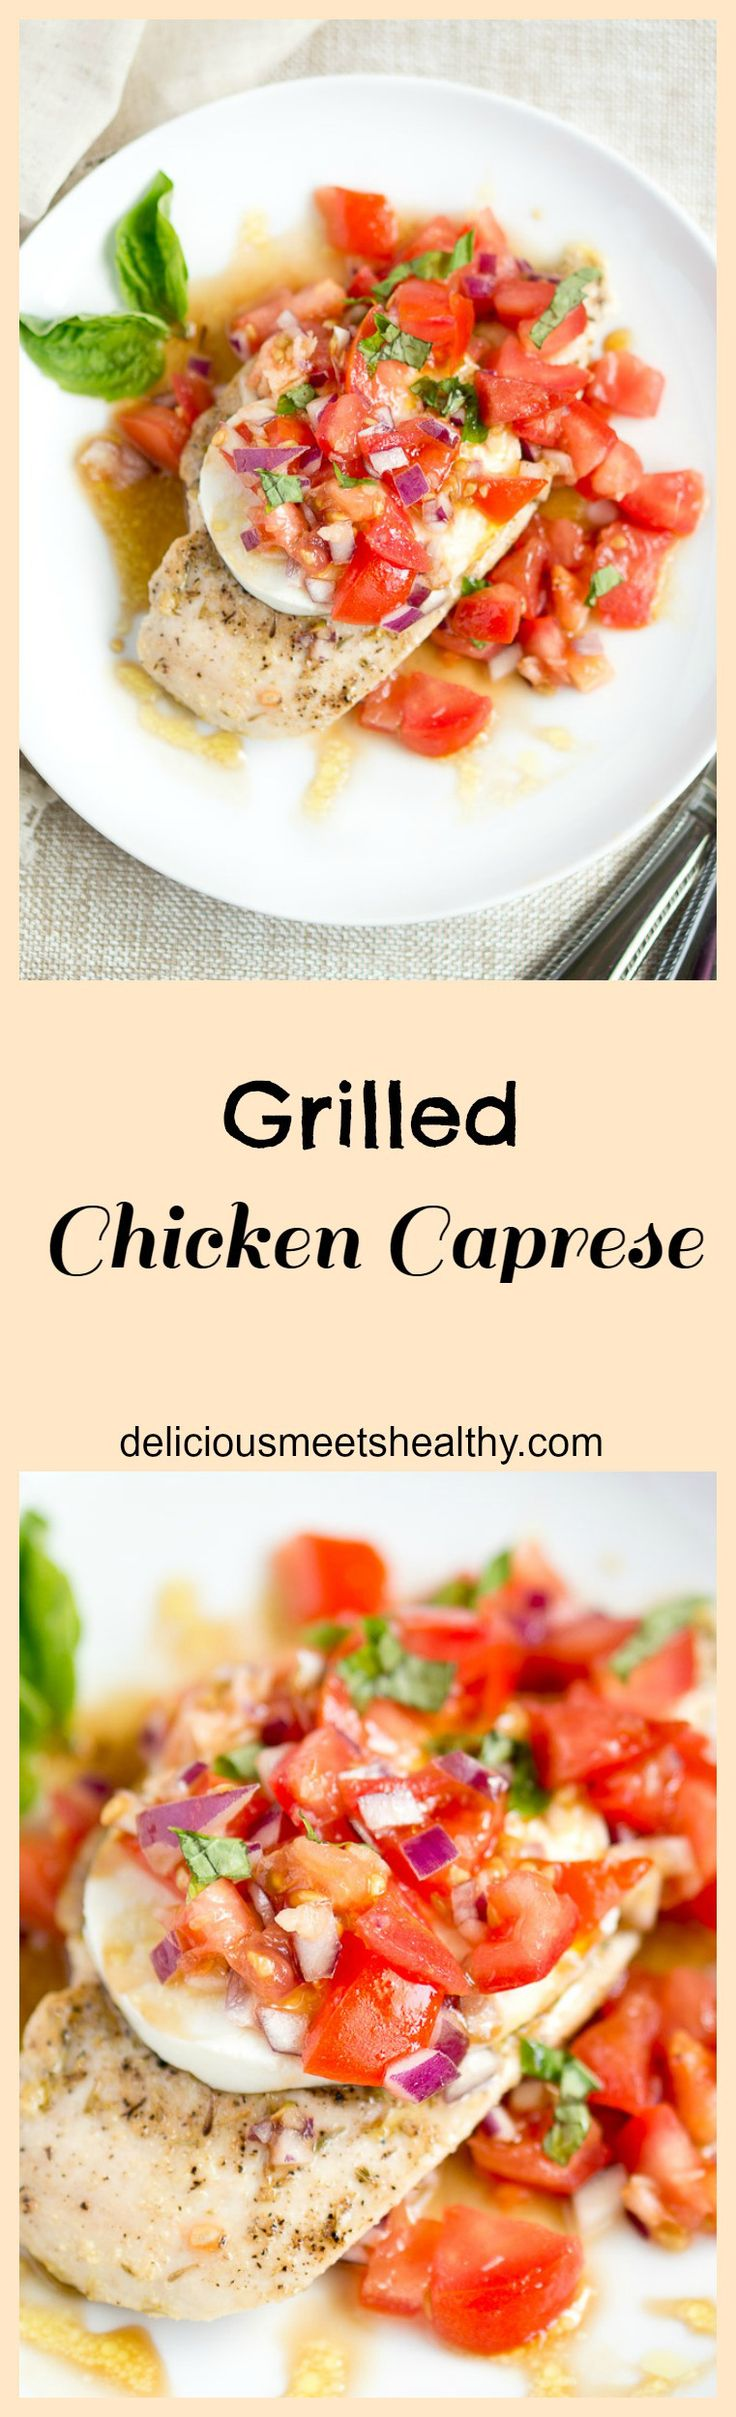 Grilled Chicken Caprese | Light and delicious weeknight meal, ready in less than 30 minutes. It's also healthy, low-carb, gluten-free and grain-free. | #glutenfree #healthy #light #skinny #summer #weeknight | www.deliciousmeetshealthy.com